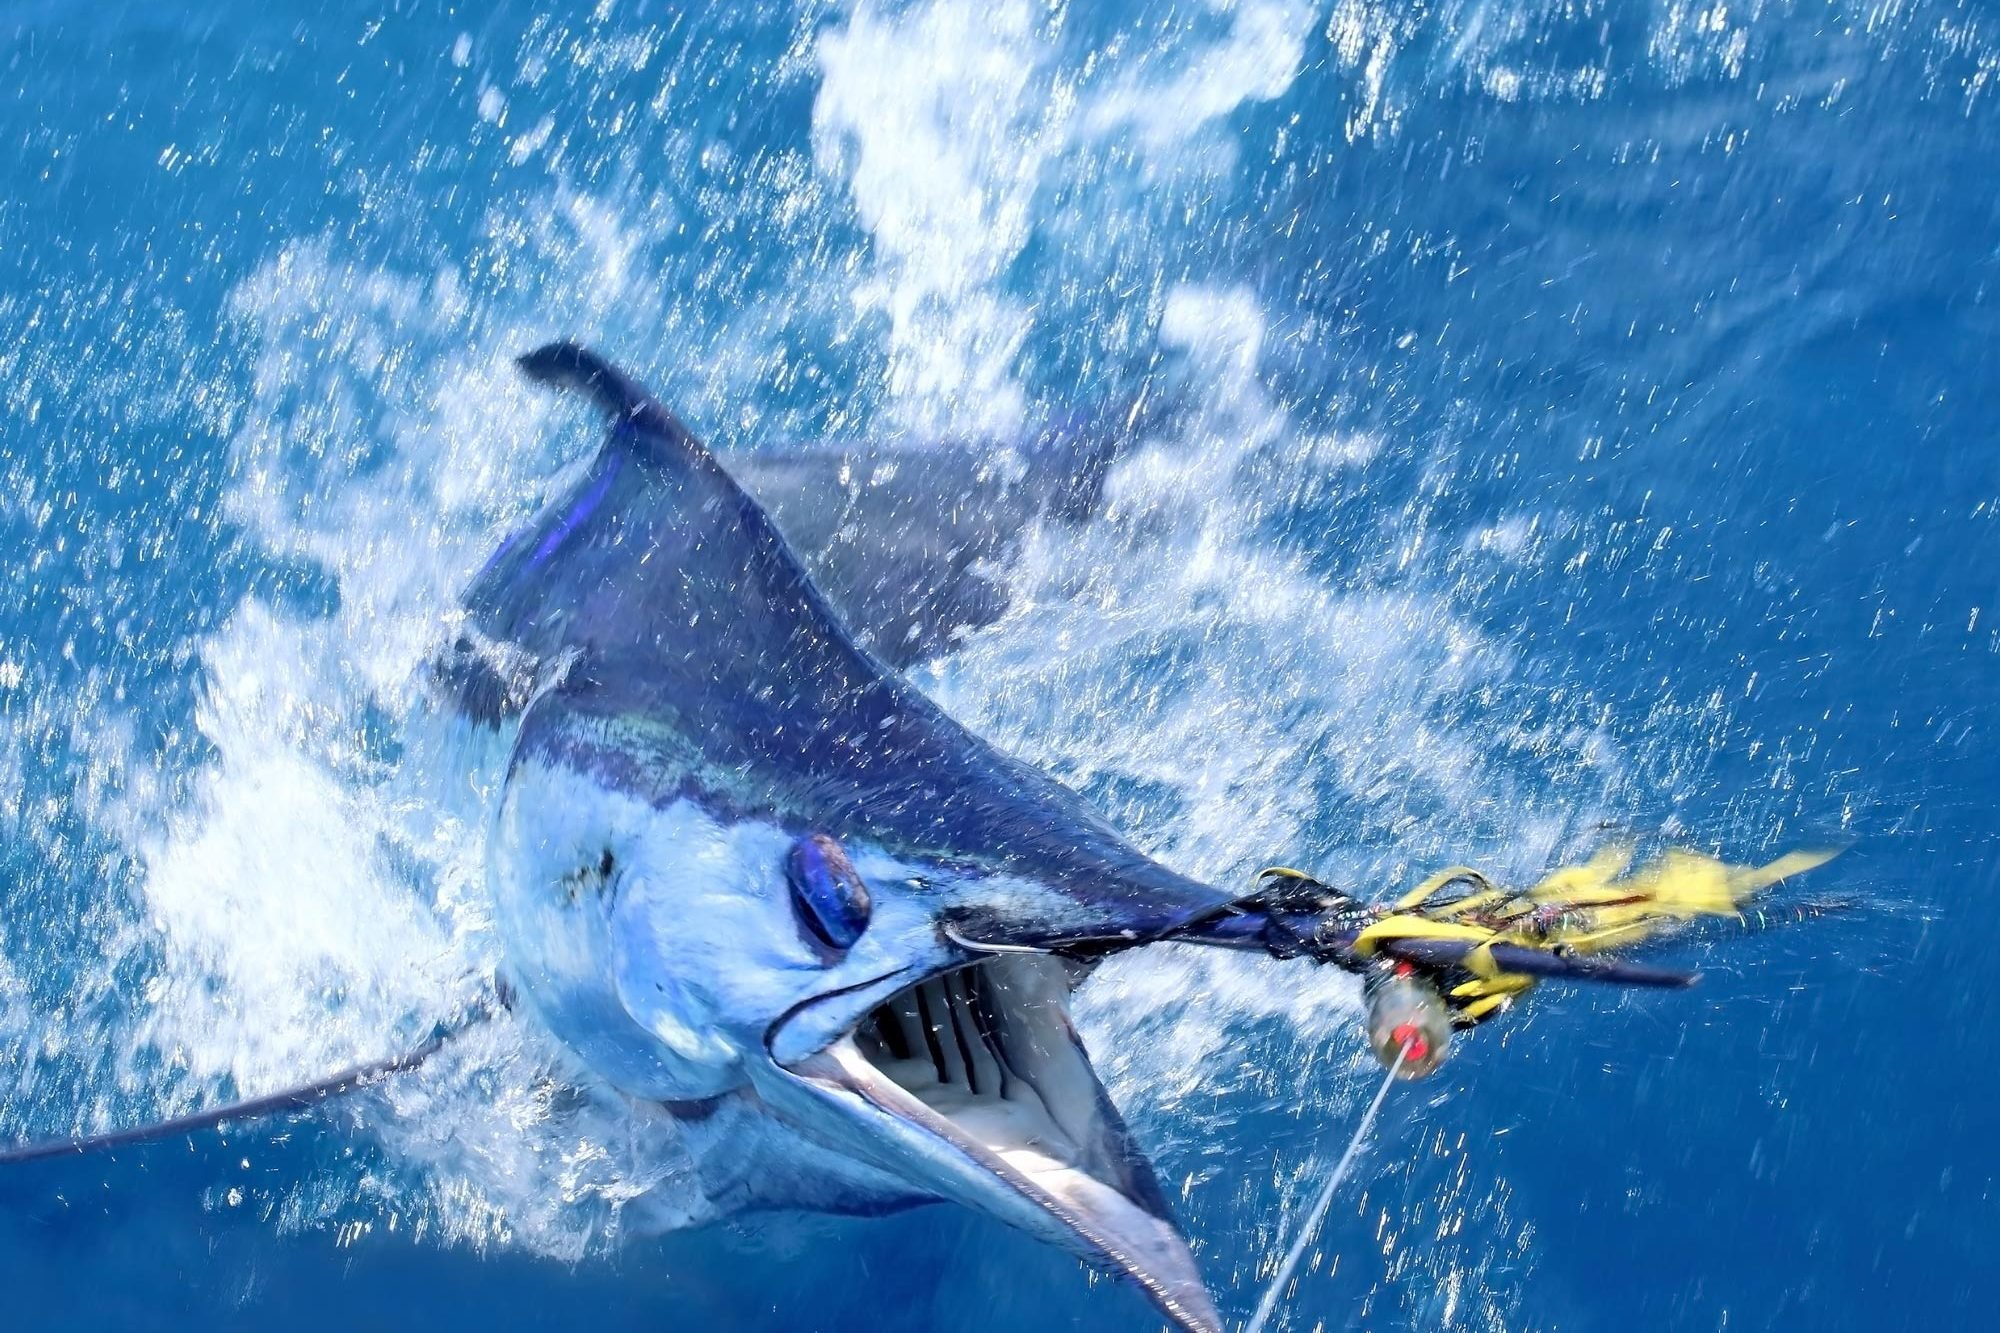 A close-up of a Marlin half-pulled out of the water on a fishing line